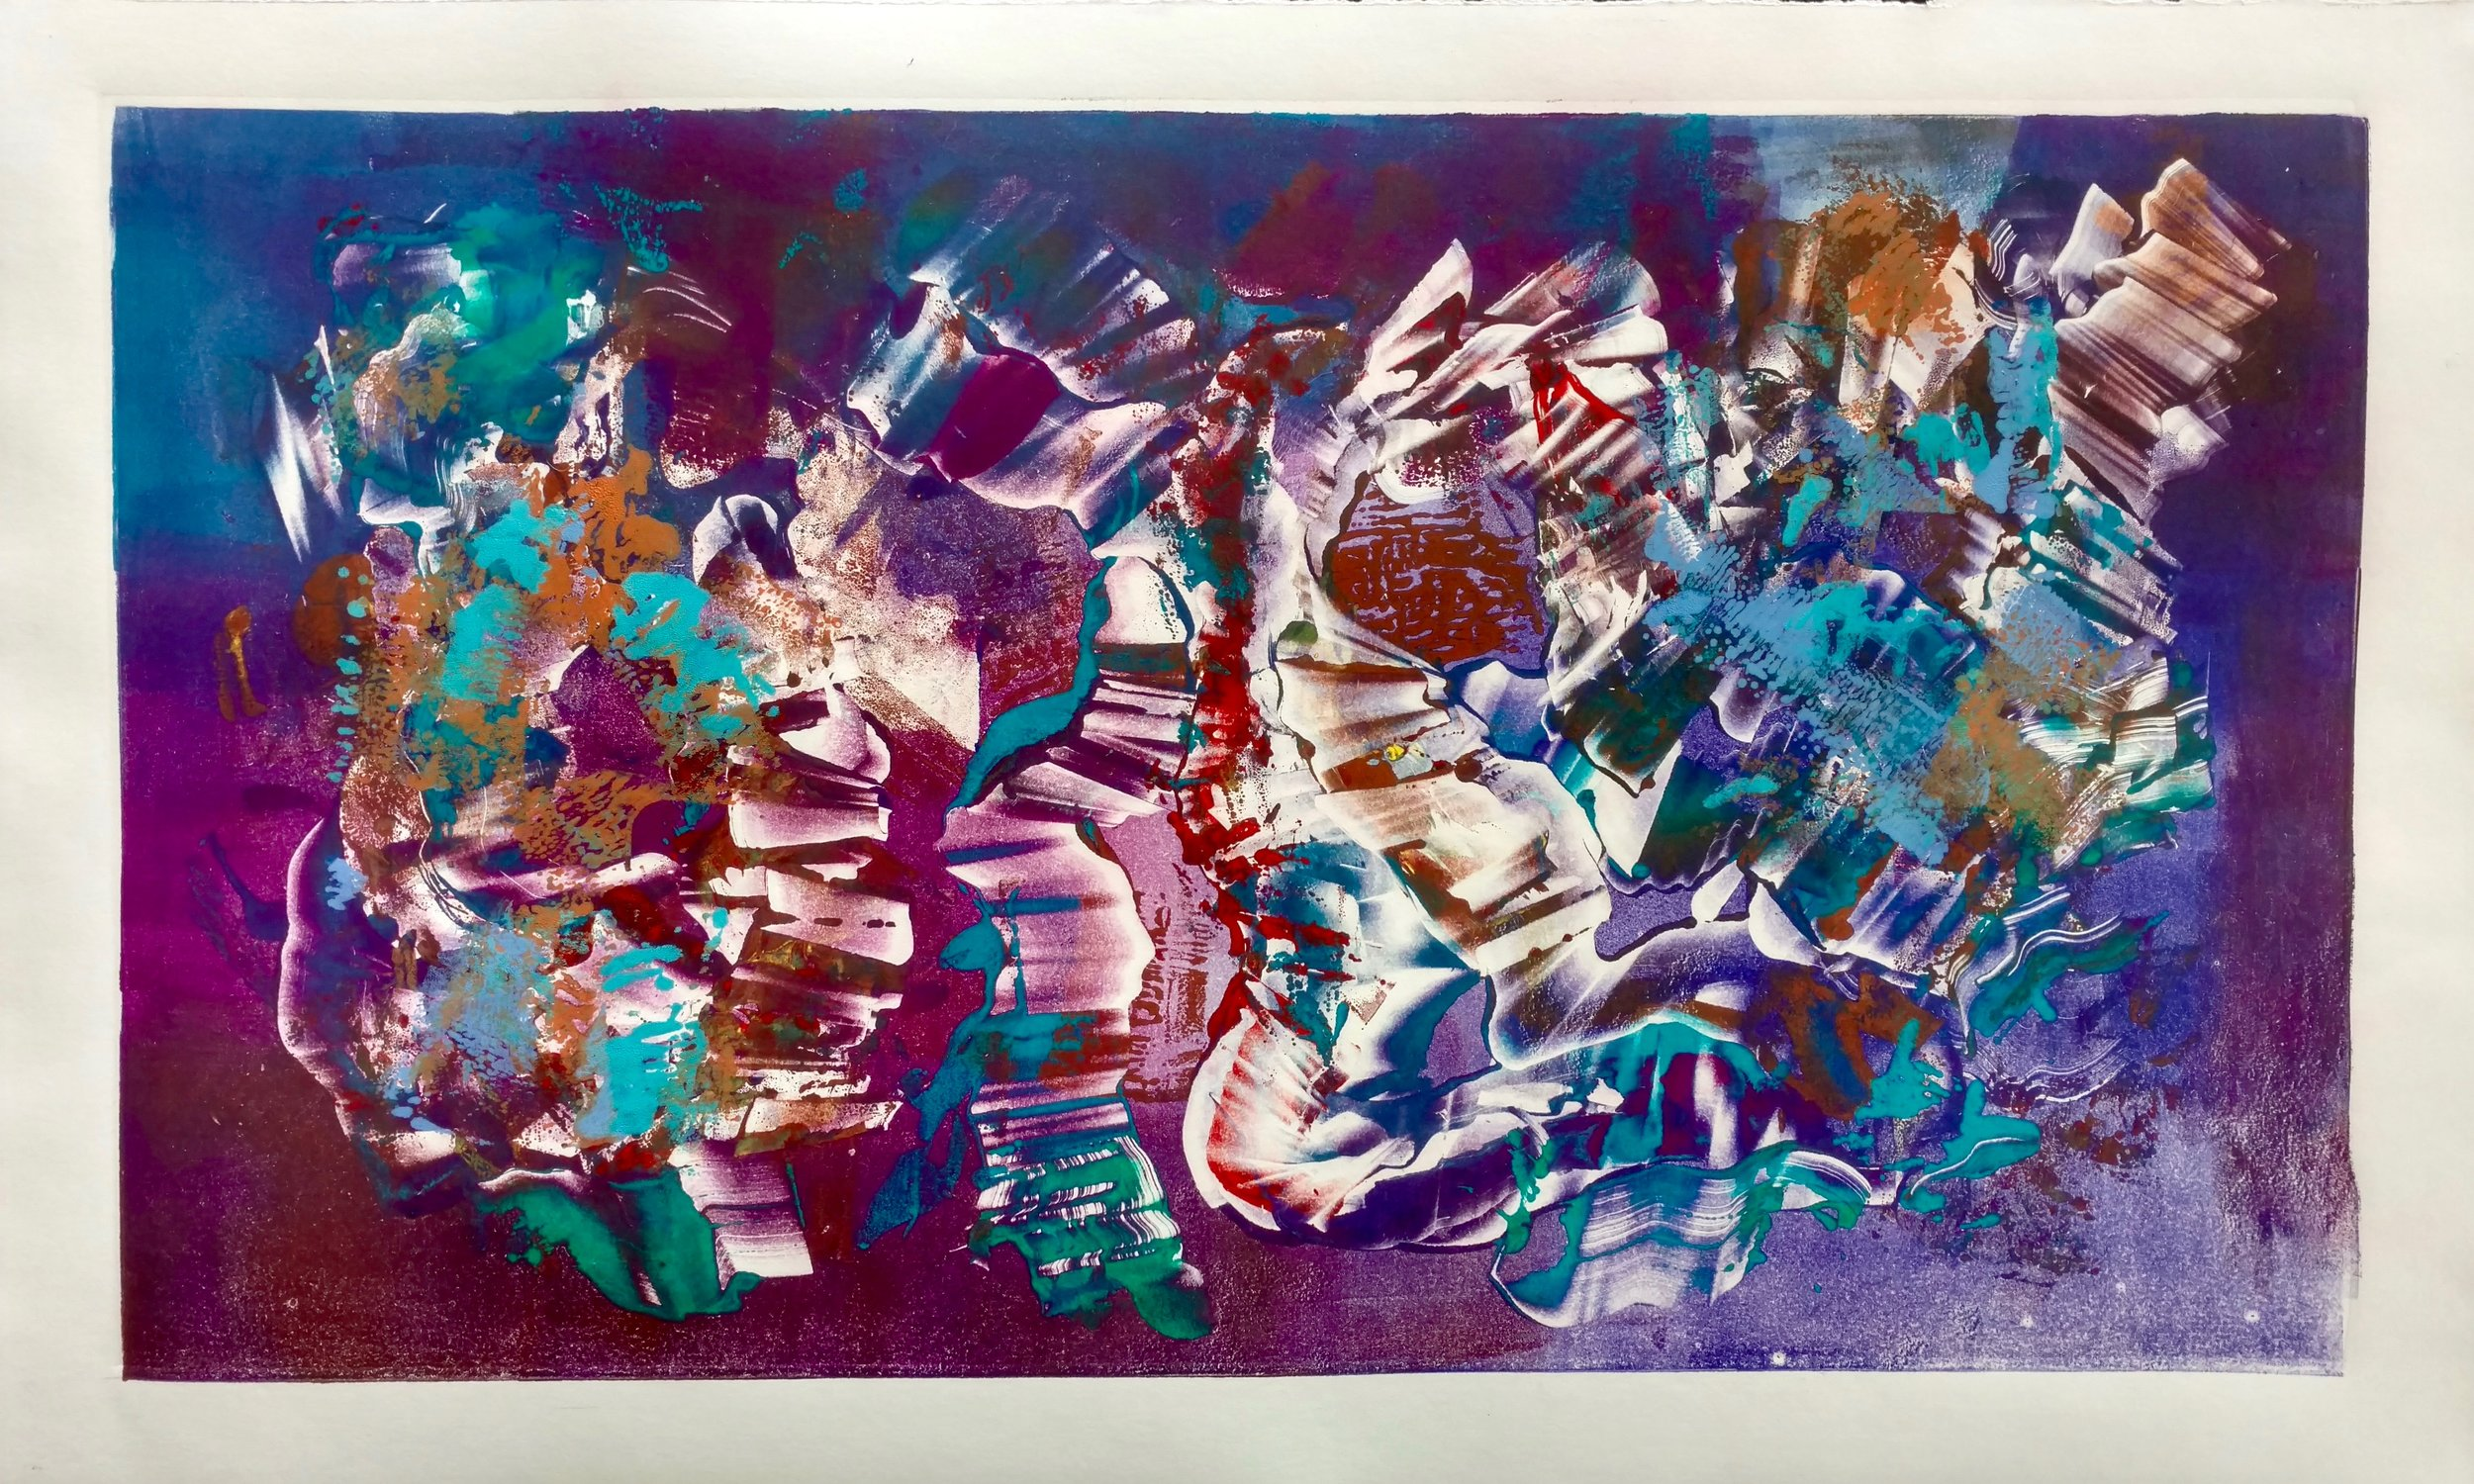 "Chaos in Purple,    monotype print, 18 x 24"" (45.72 x 60.96cm)"